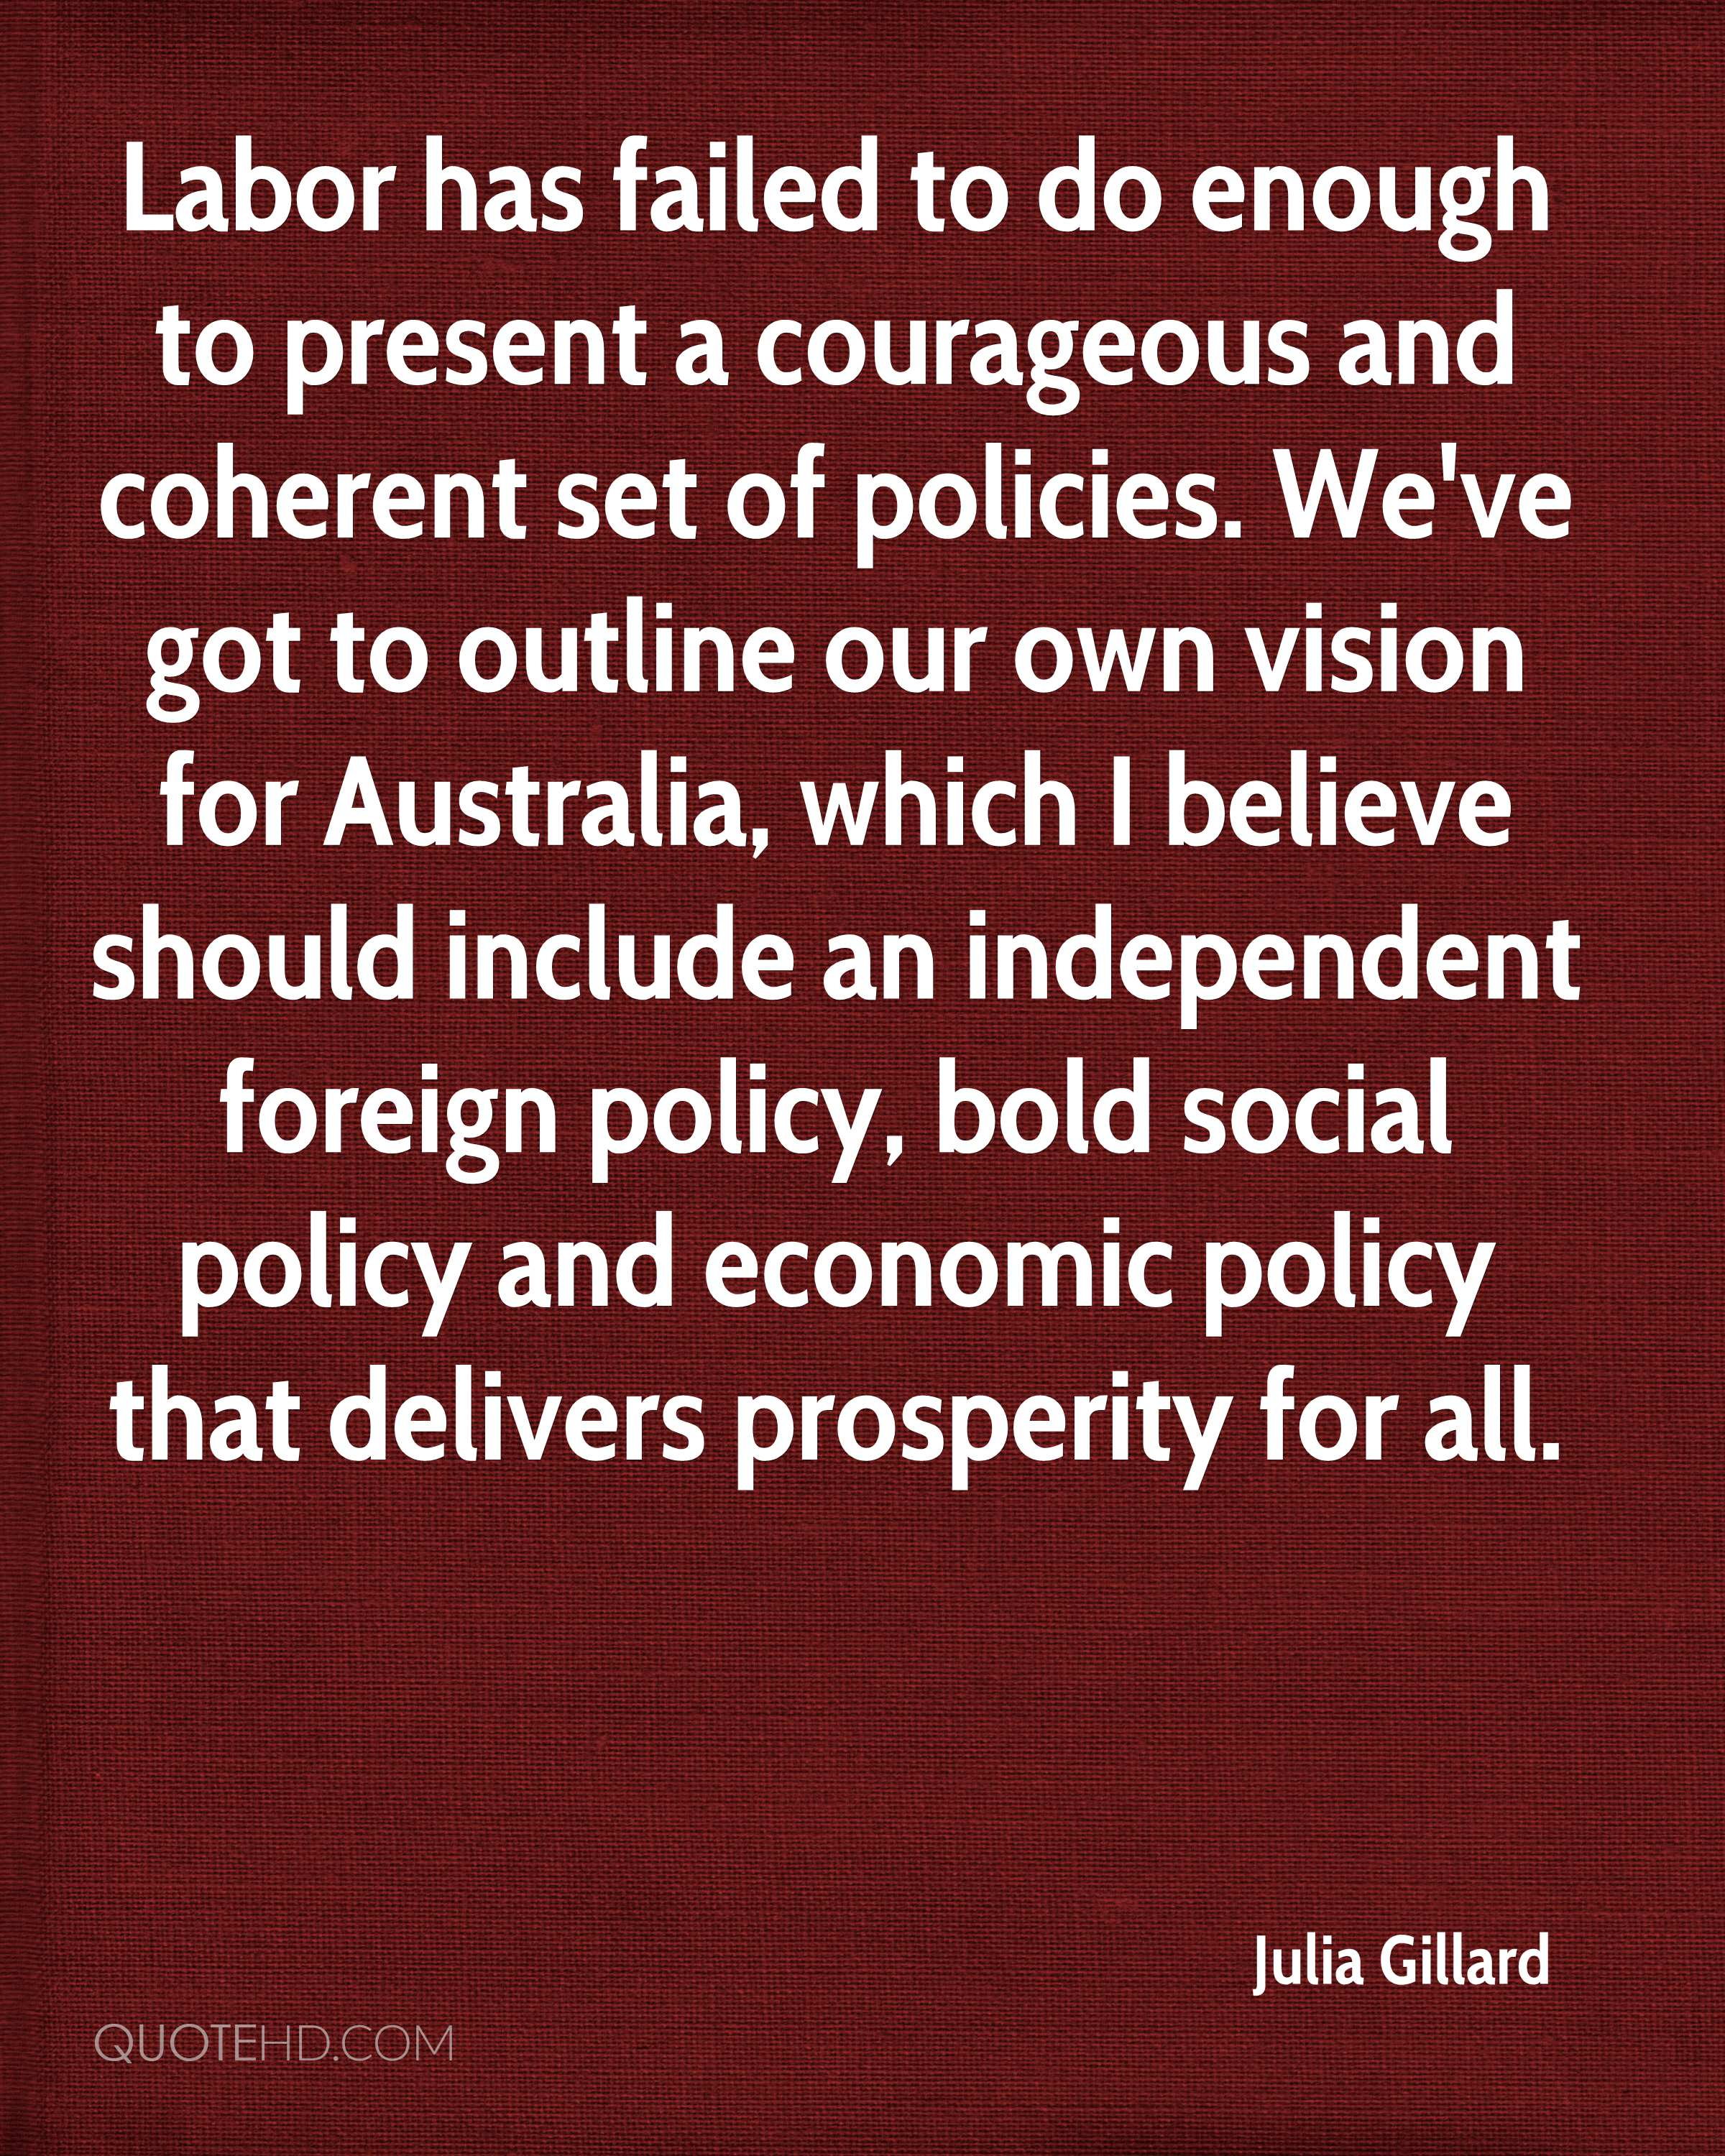 Labor has failed to do enough to present a courageous and coherent set of policies. We've got to outline our own vision for Australia, which I believe should include an independent foreign policy, bold social policy and economic policy that delivers prosperity for all.